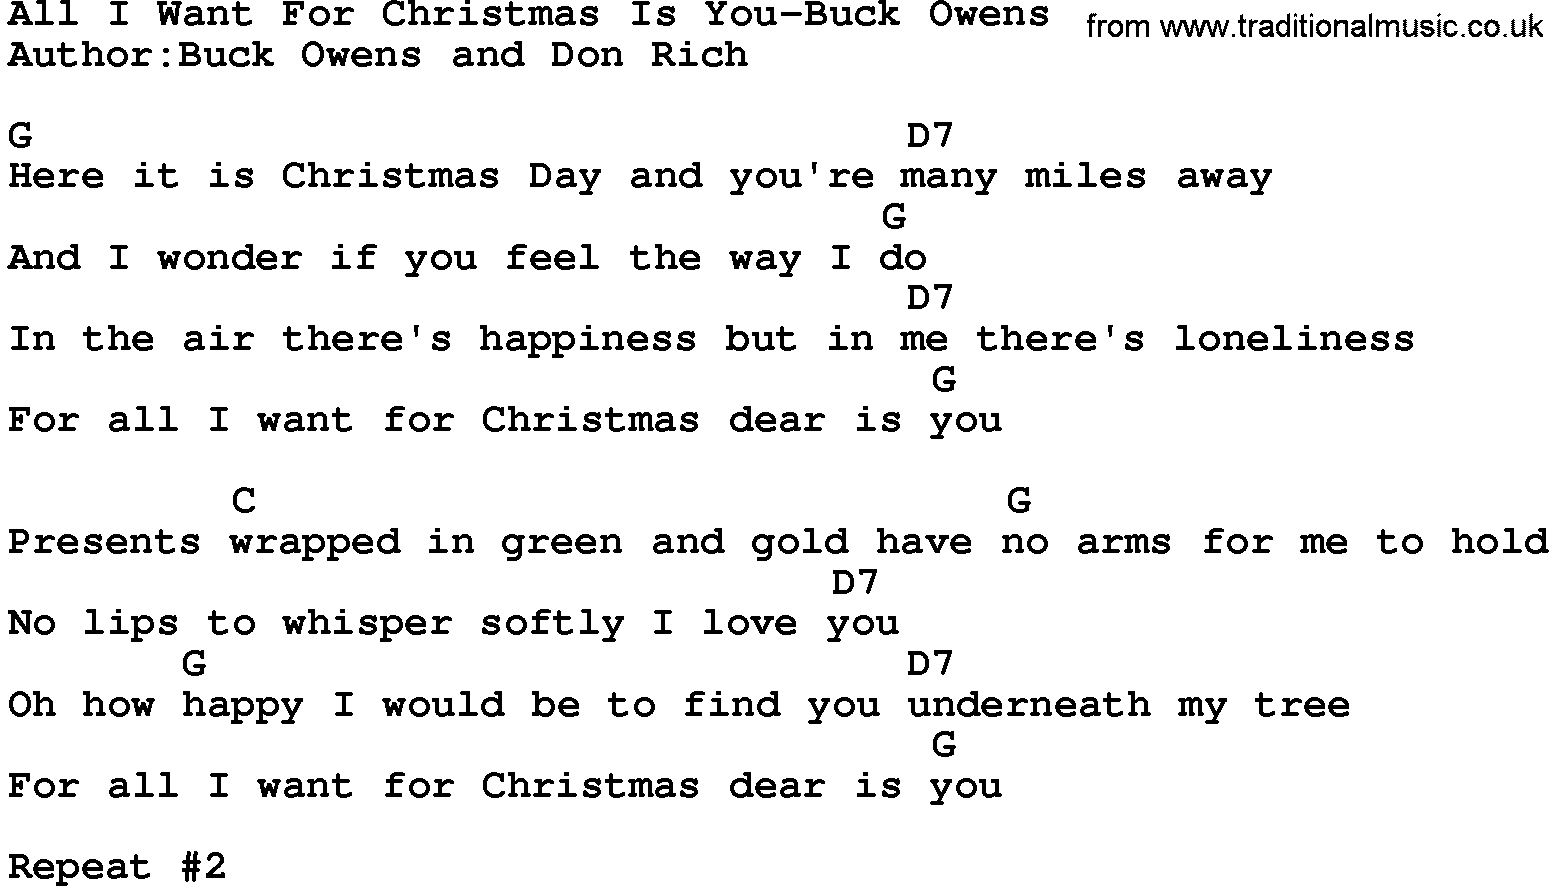 Lyrics All I Want For Christmas.Country Music All I Want For Christmas Is You Buck Owens